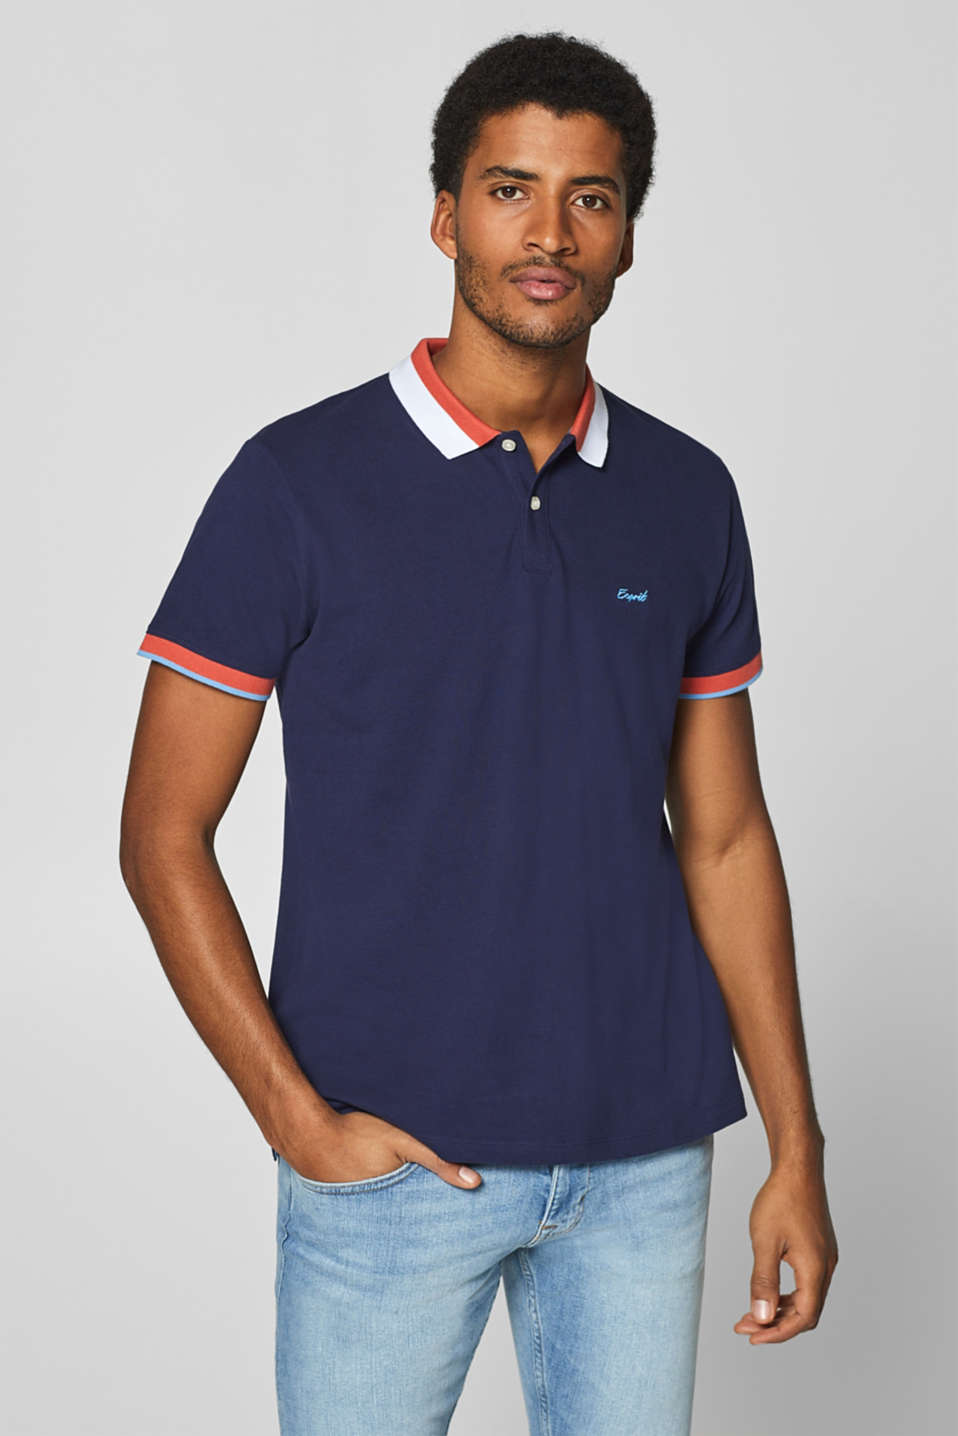 Esprit - Piqué polo shirt with accents, 100% cotton